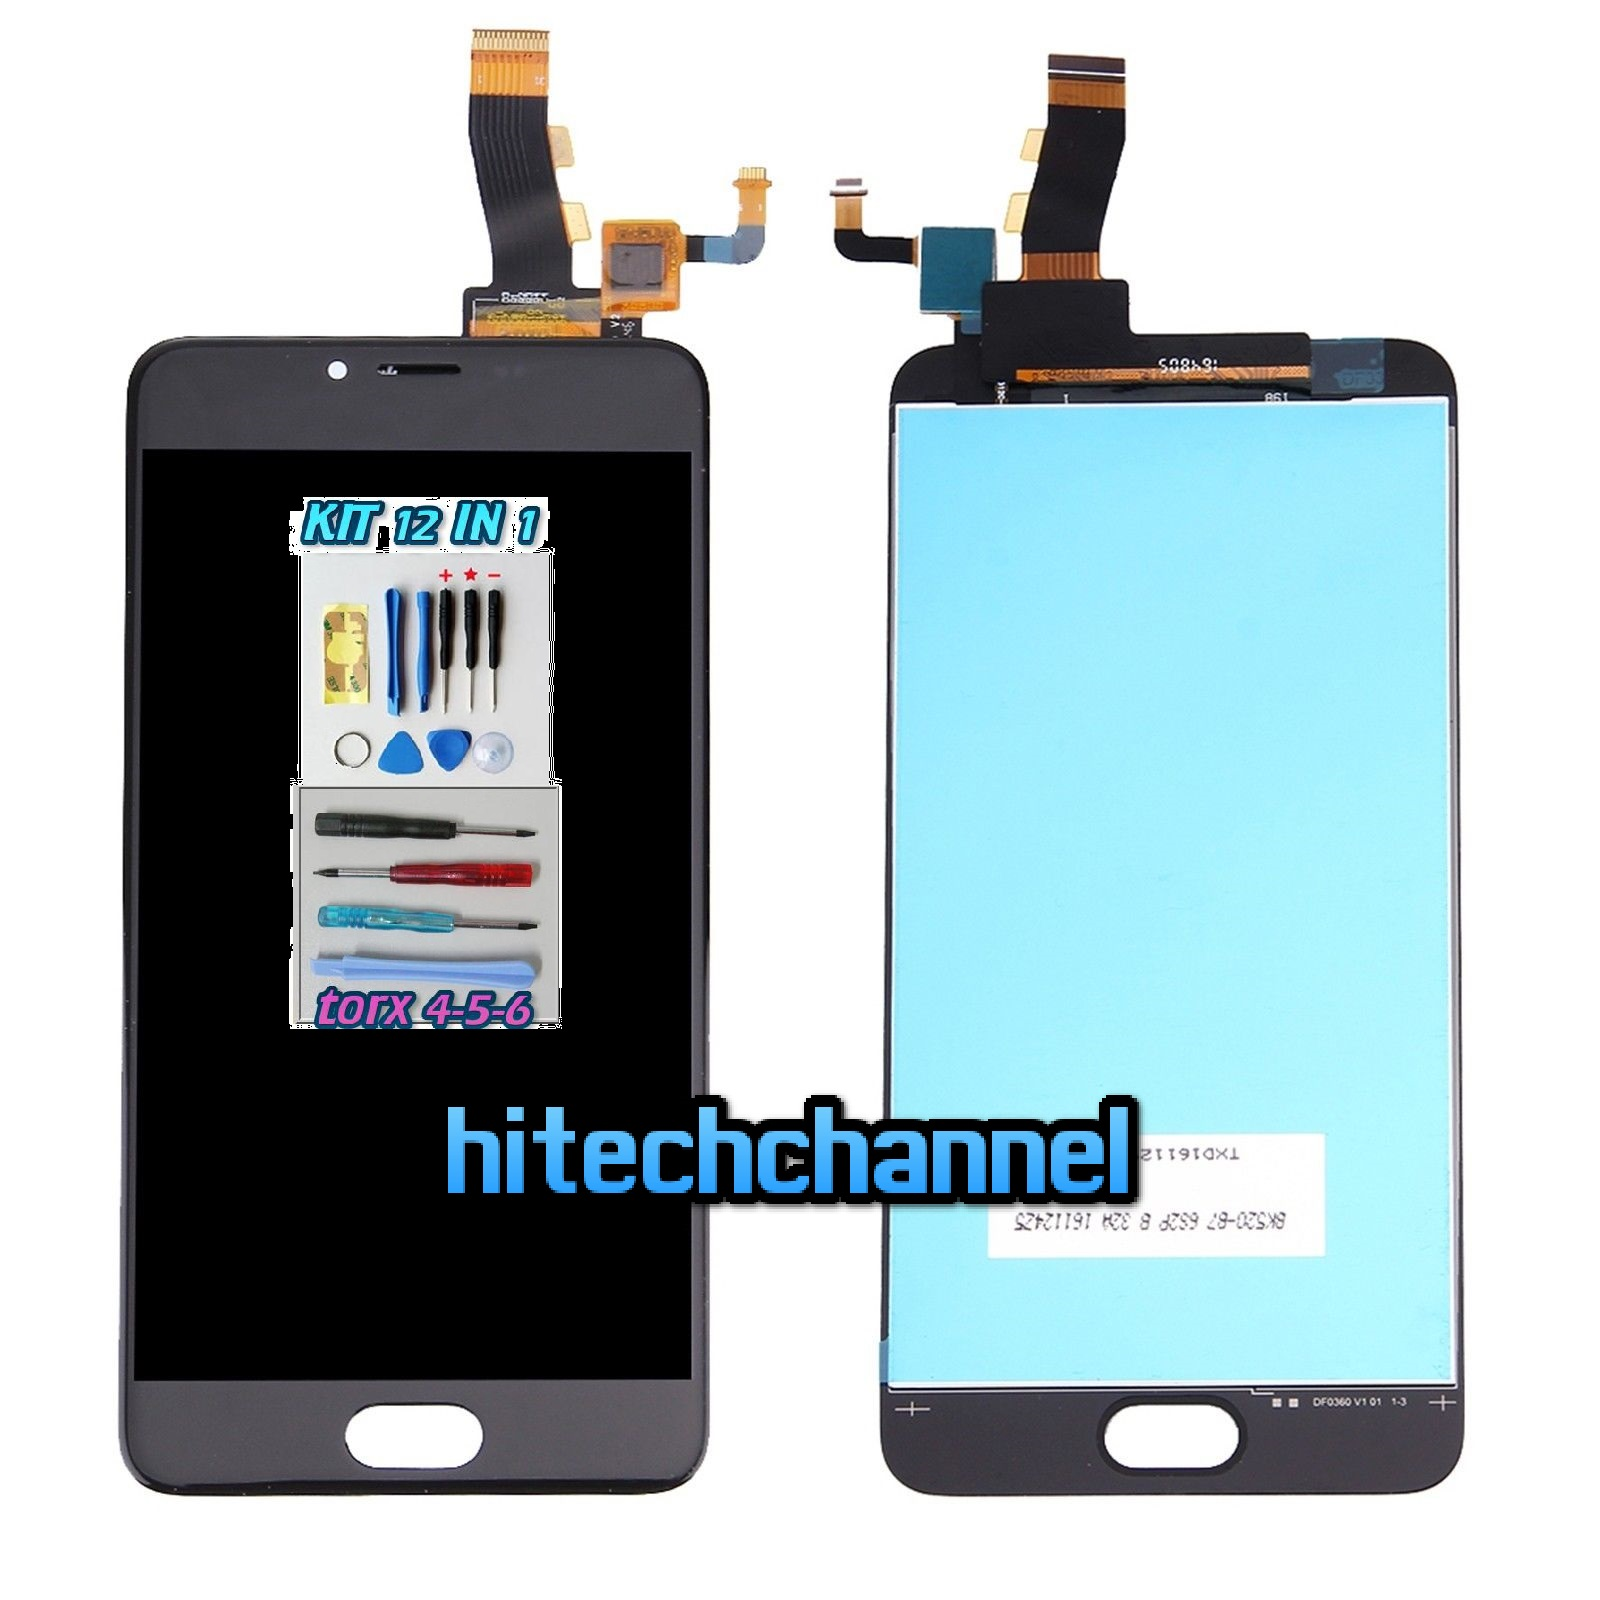 TOUCH SCREEN LCD DISPLAY MEIZU M5 NERO kit 9 in 1 biadesivo